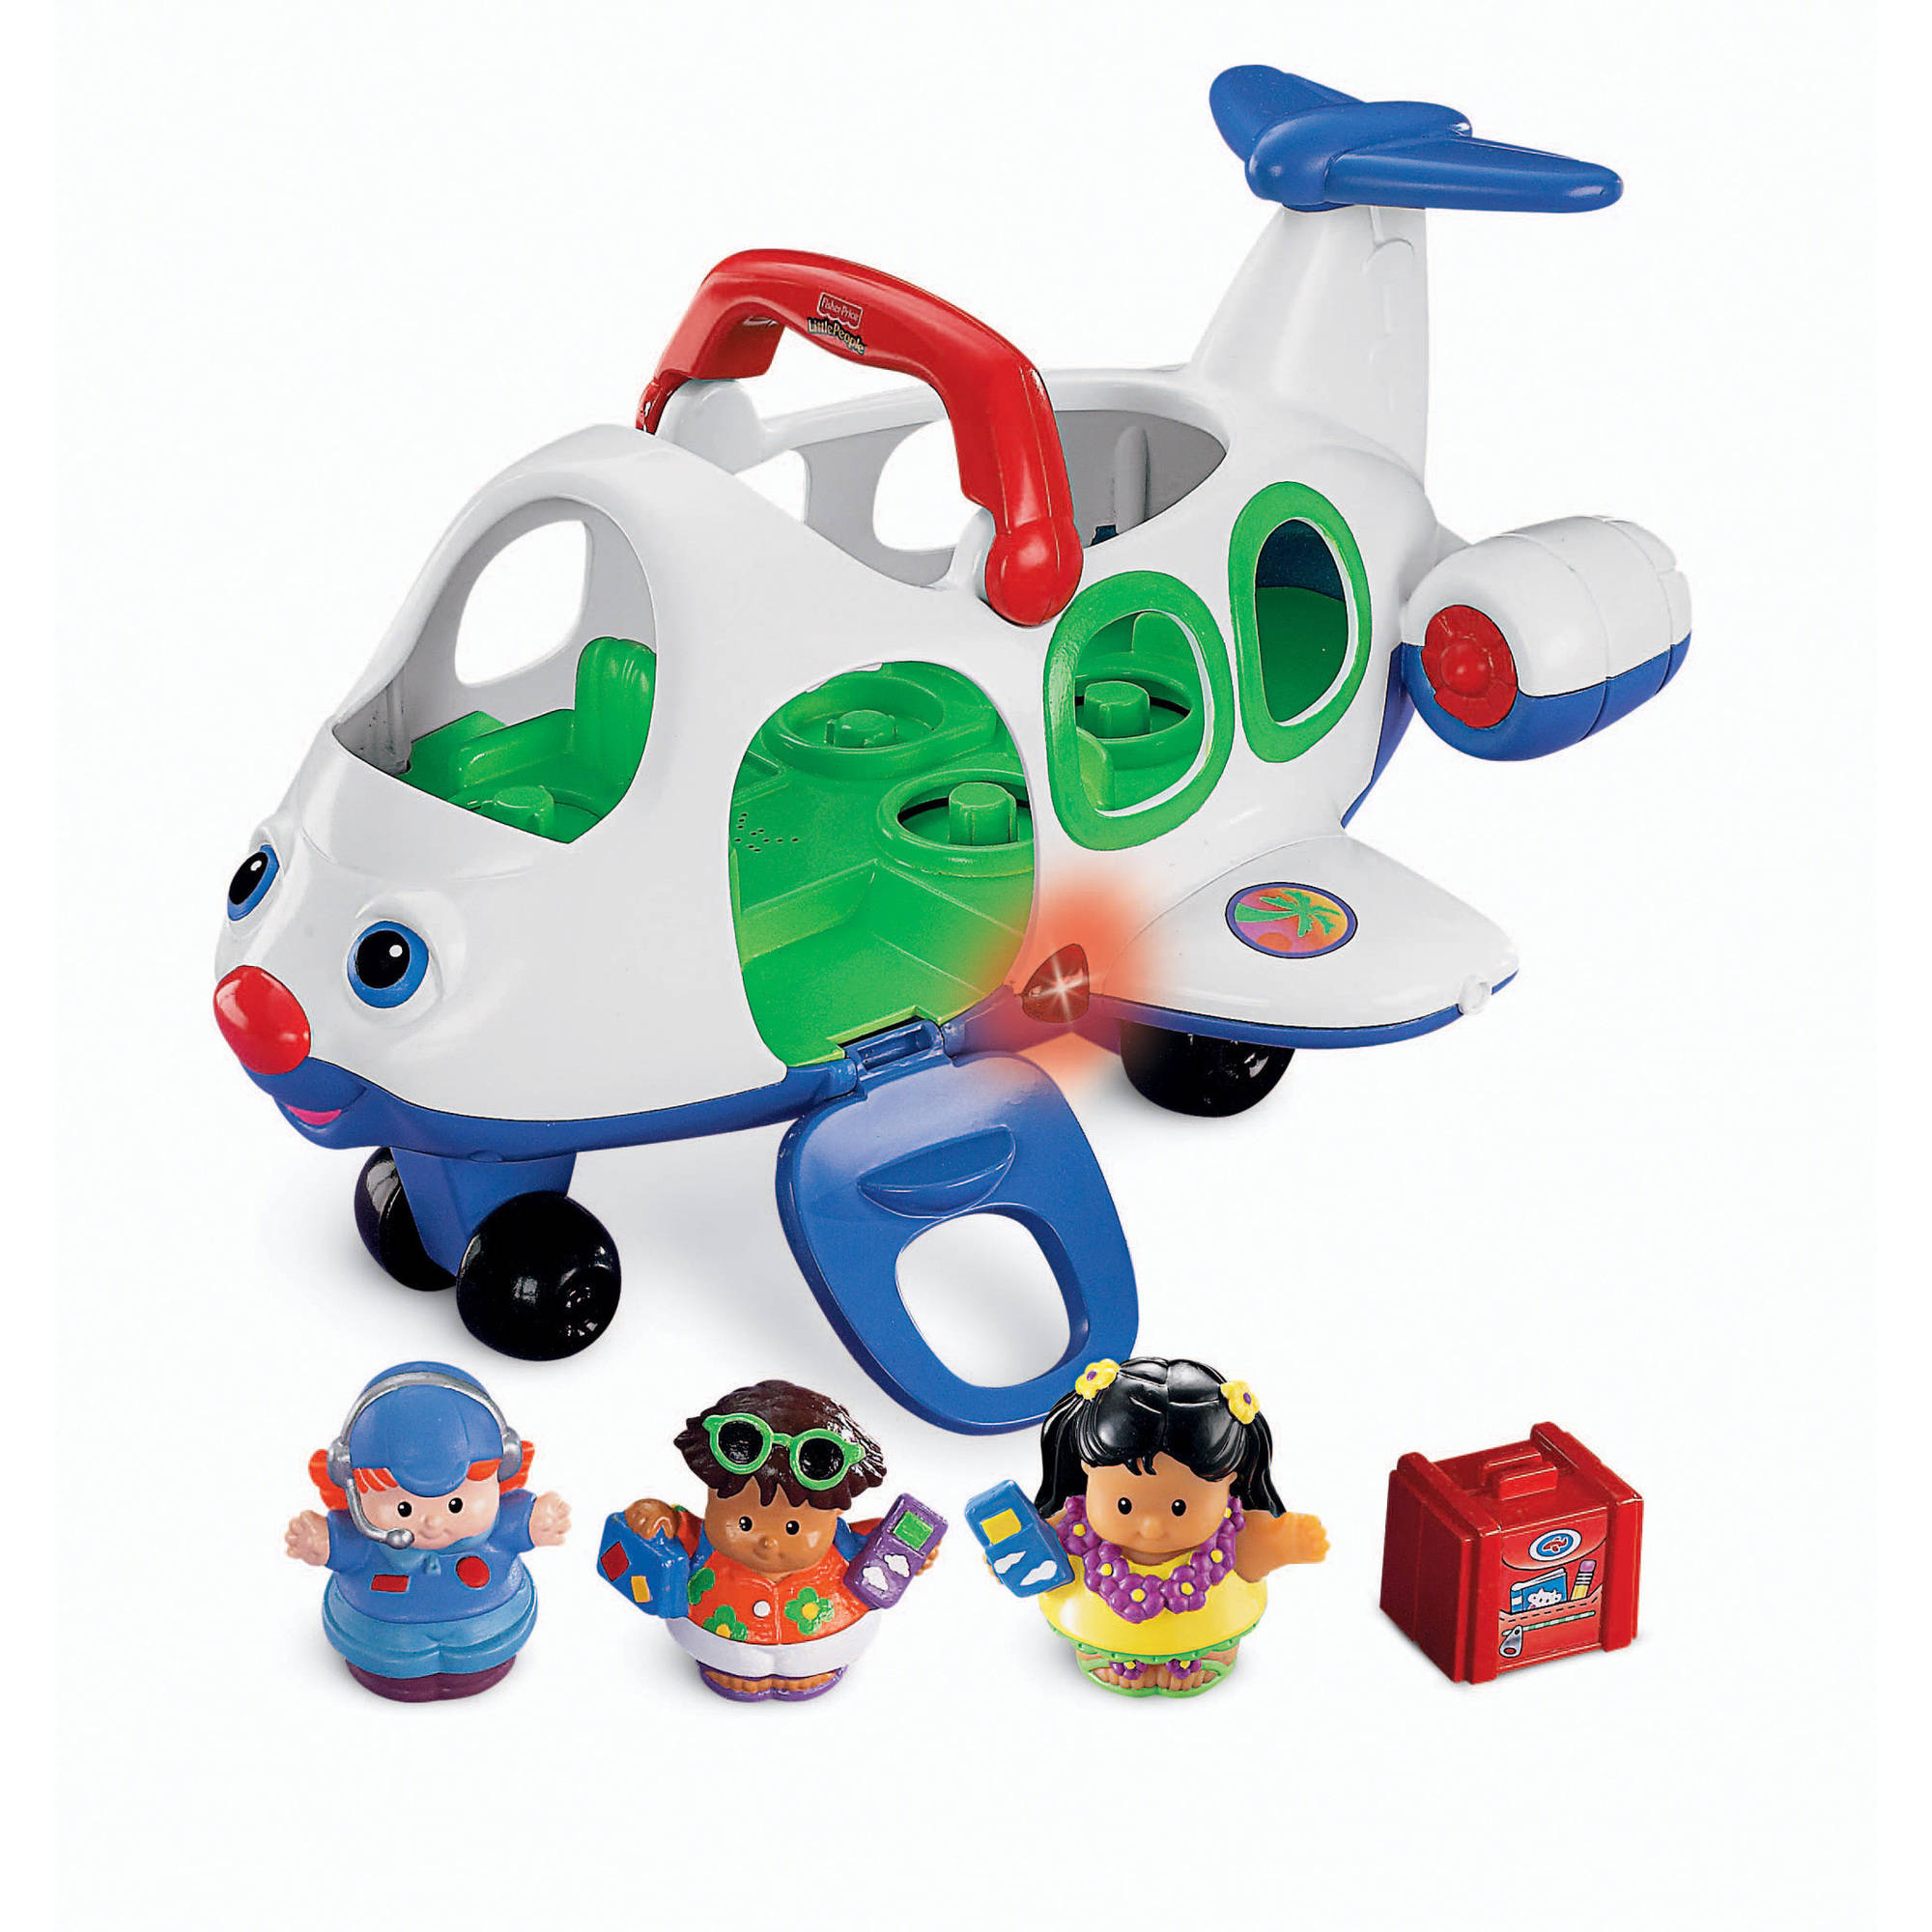 Little People Wheelies Race Car - Walmart.com